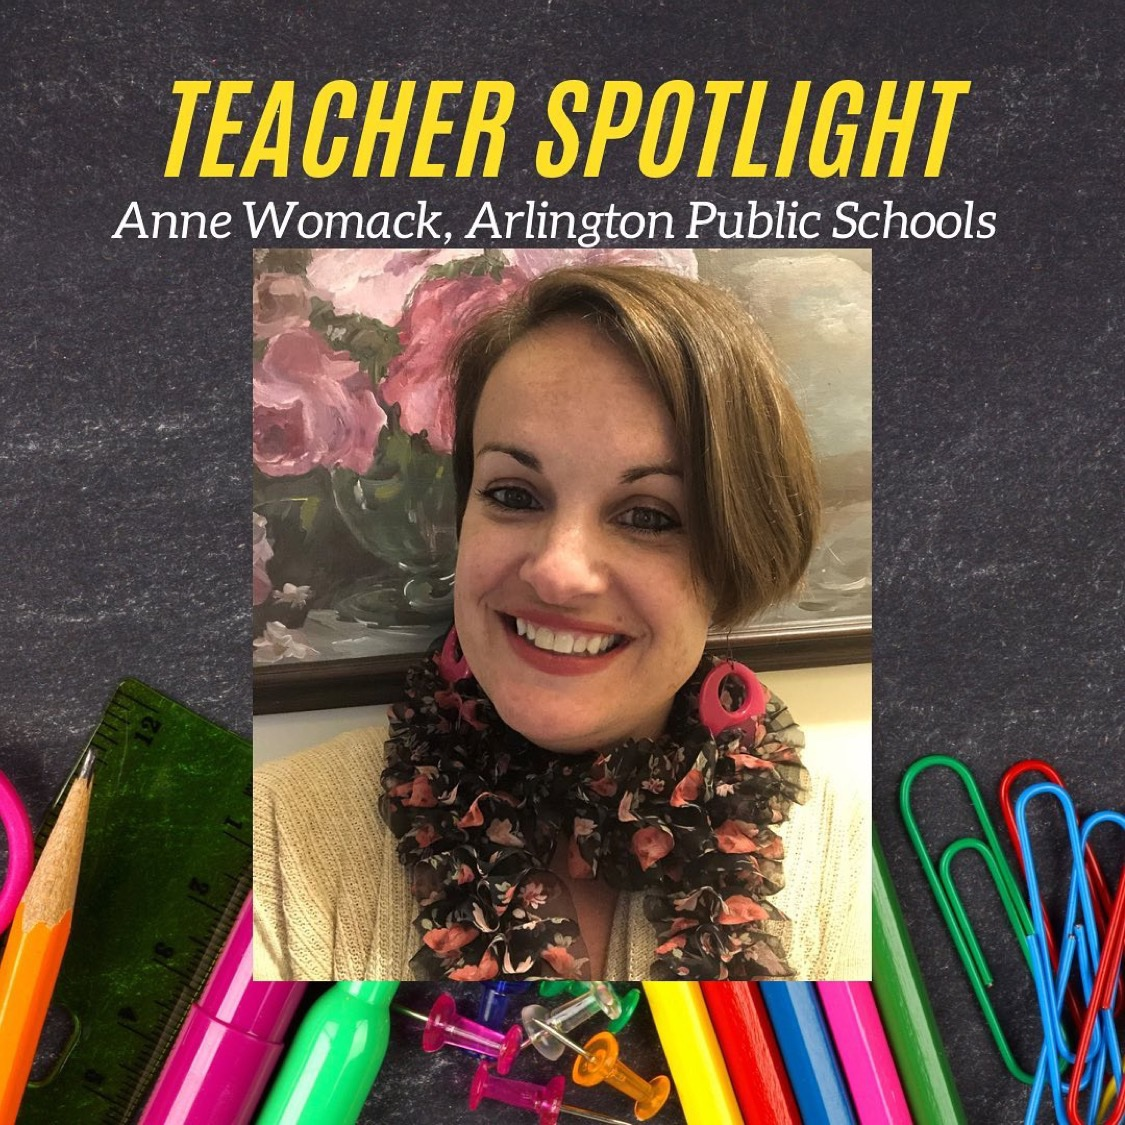 Thank you for the interview Virginia New Teacher Support Program! <a target='_blank' href='http://twitter.com/virginiantsp'>@virginiantsp</a>  <a target='_blank' href='http://twitter.com/APSFleetPTA'>@APSFleetPTA</a> <a target='_blank' href='http://twitter.com/APSLibrarians'>@APSLibrarians</a> <a target='_blank' href='http://twitter.com/APS_FleetES'>@APS_FleetES</a> <a target='_blank' href='http://twitter.com/Principal_Fleet'>@Principal_Fleet</a> <a target='_blank' href='http://twitter.com/Fleet_AP'>@Fleet_AP</a> <a target='_blank' href='https://t.co/gKkOZn8Kr7'>https://t.co/gKkOZn8Kr7</a>